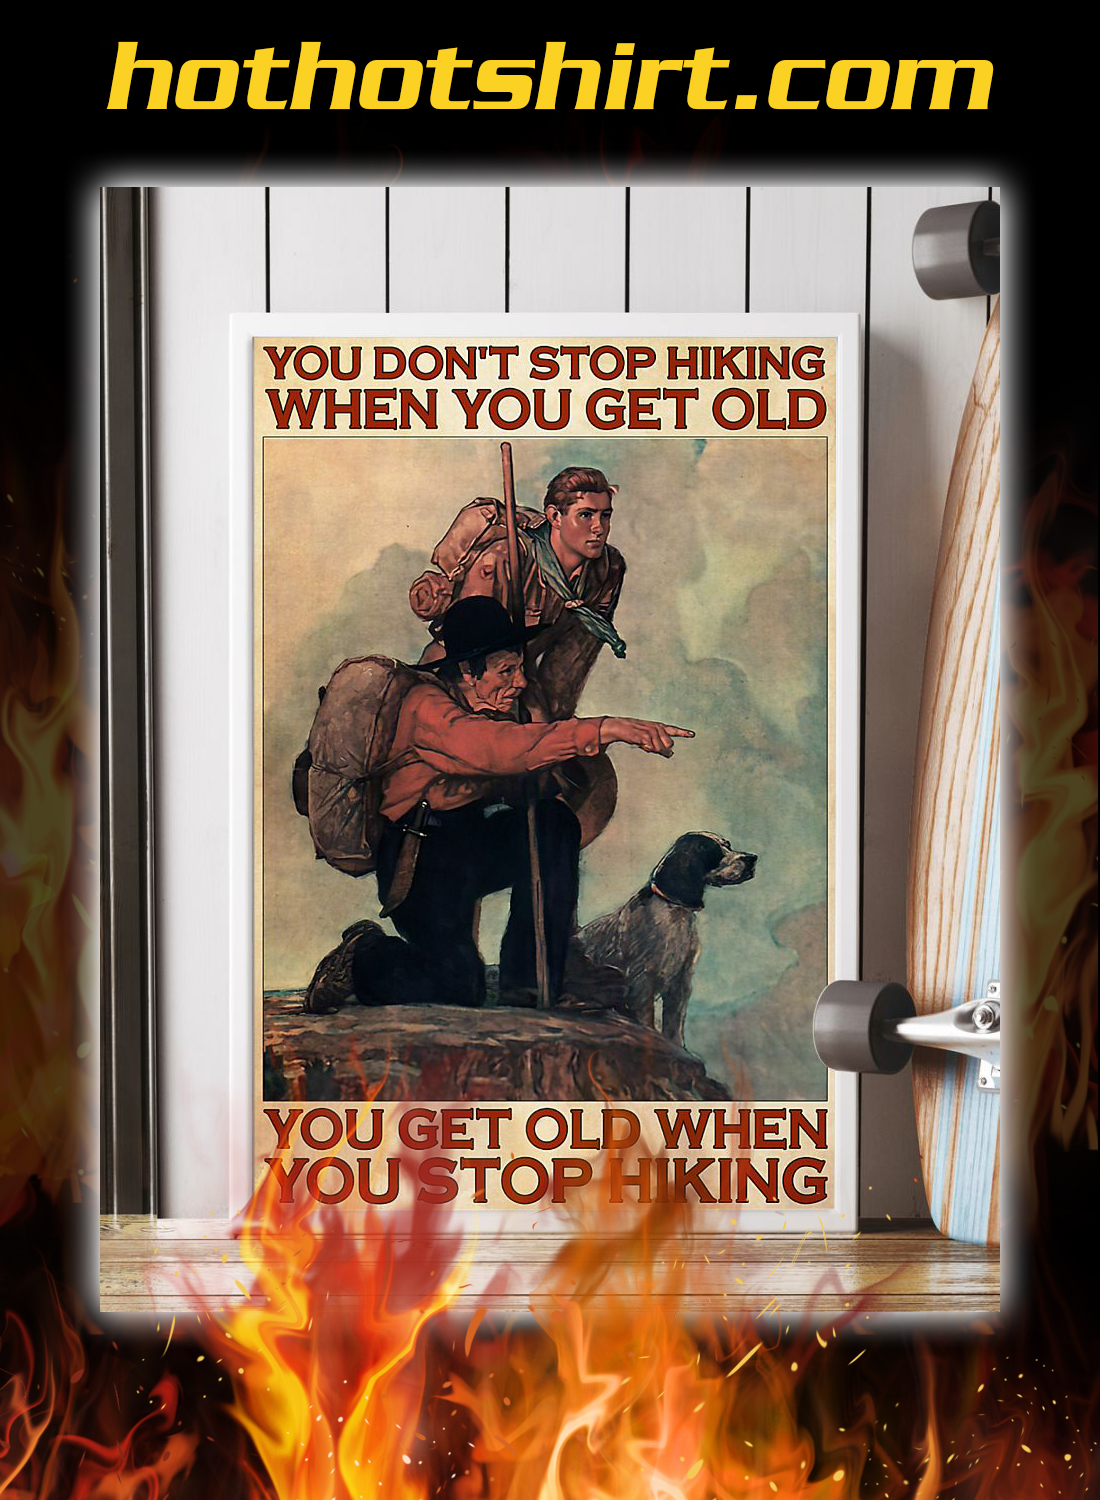 You don't stop hiking when you get old poster 2